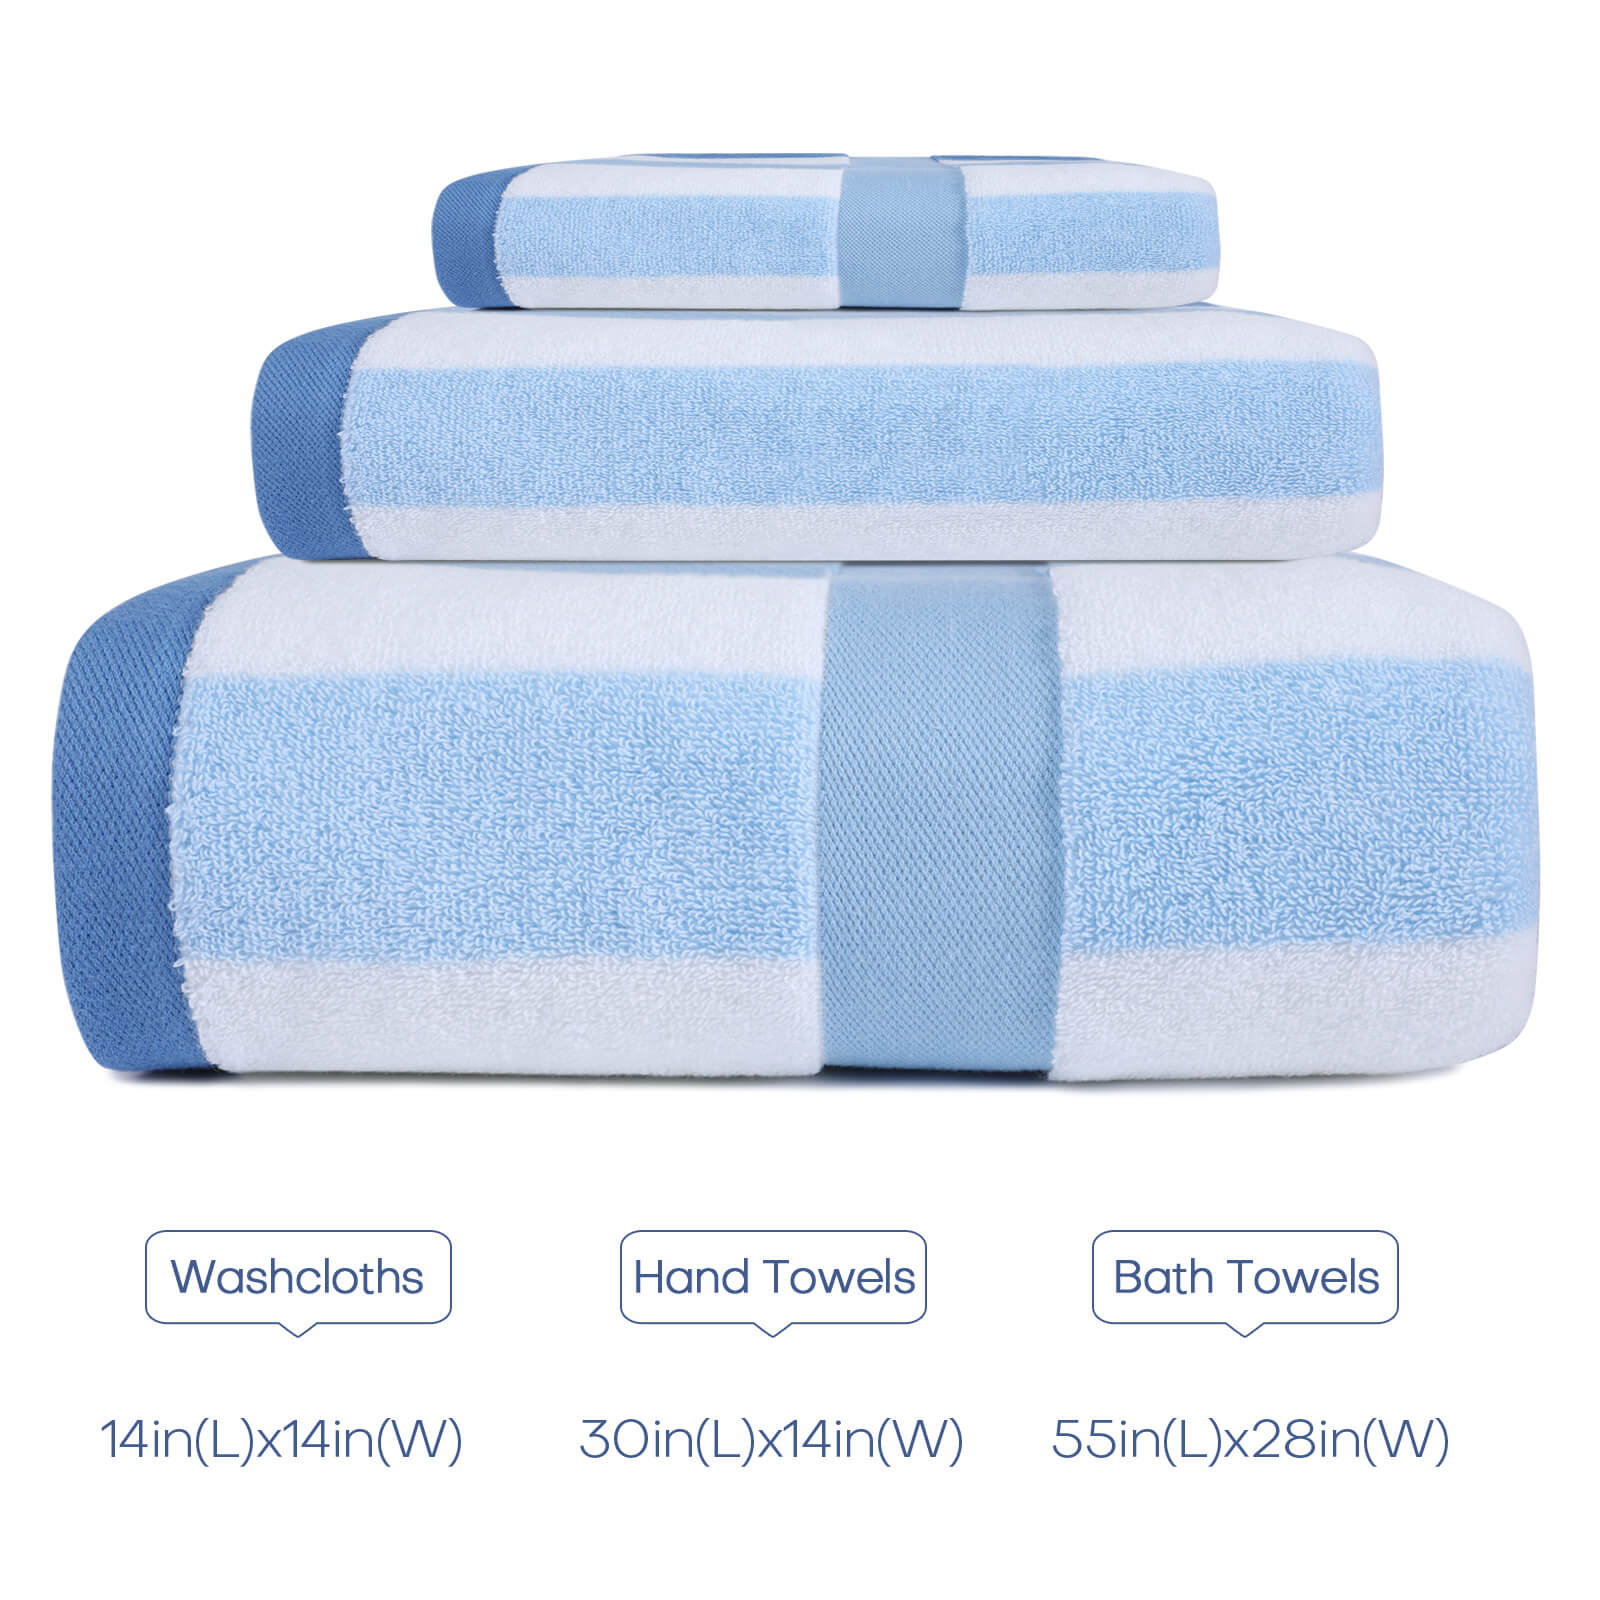 The size of the Egyptian cotton bath towel set